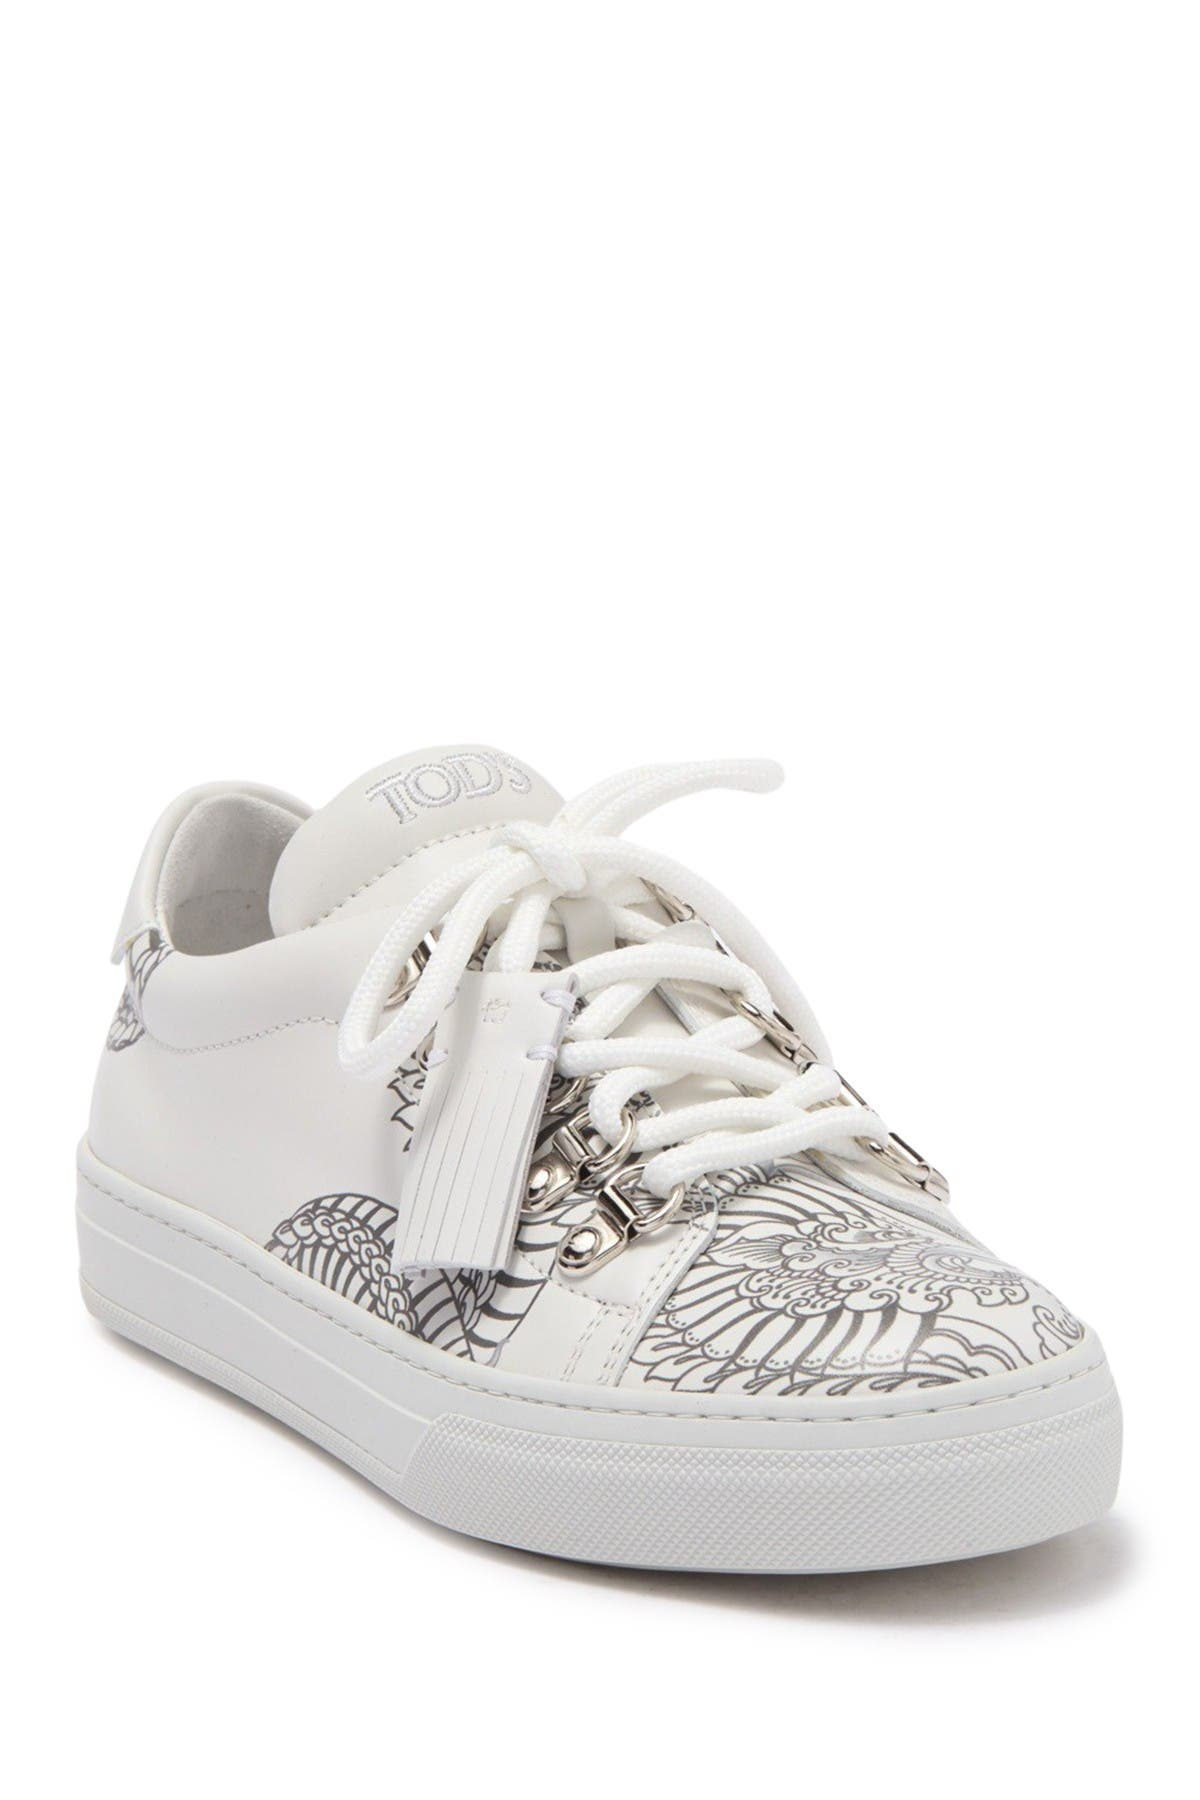 Image of Tod's Mocassino Dragon Leather Sneaker